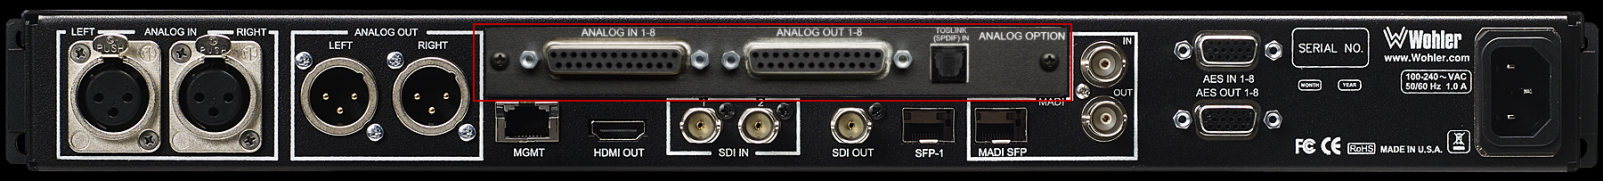 Analog Option Card